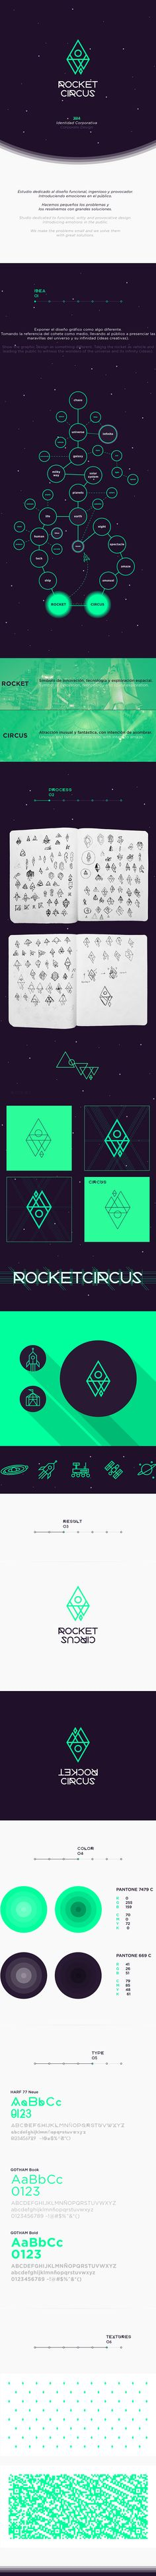 ROCKETCIRCUS by ROCKETCIRCUS MX, via Behance